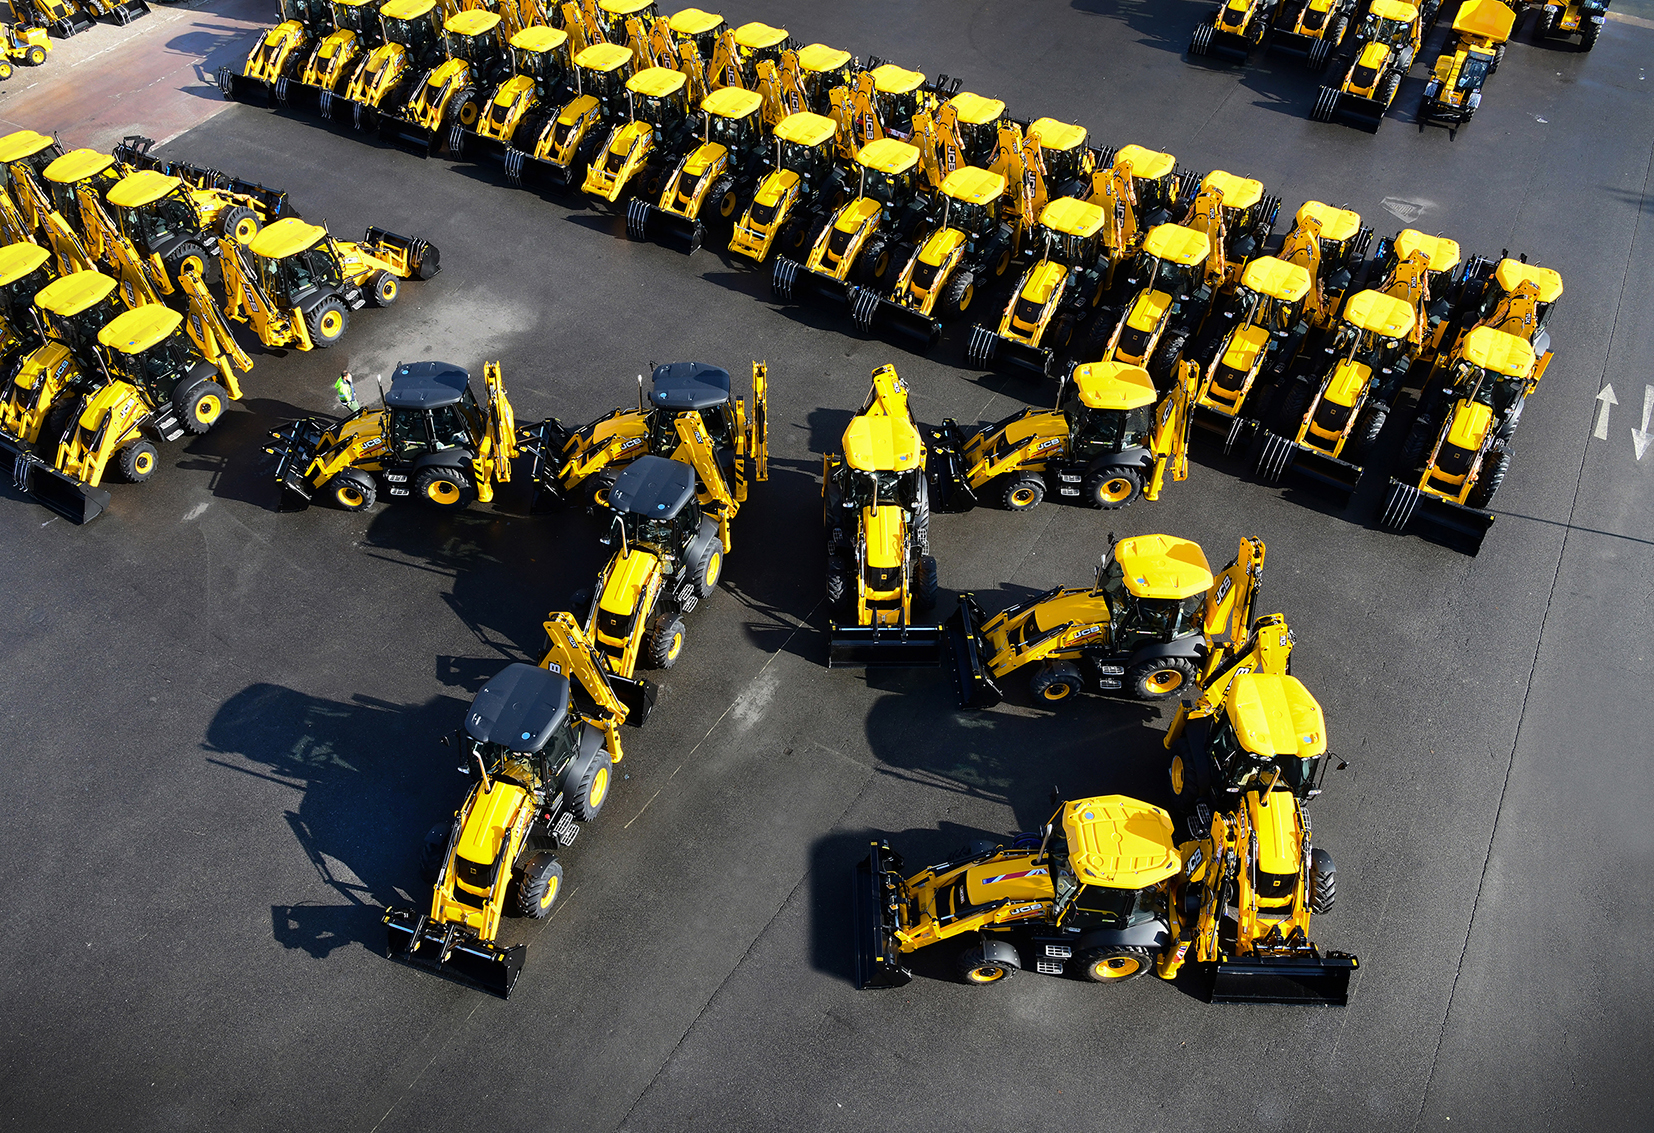 Celebrating 75 years of JCB